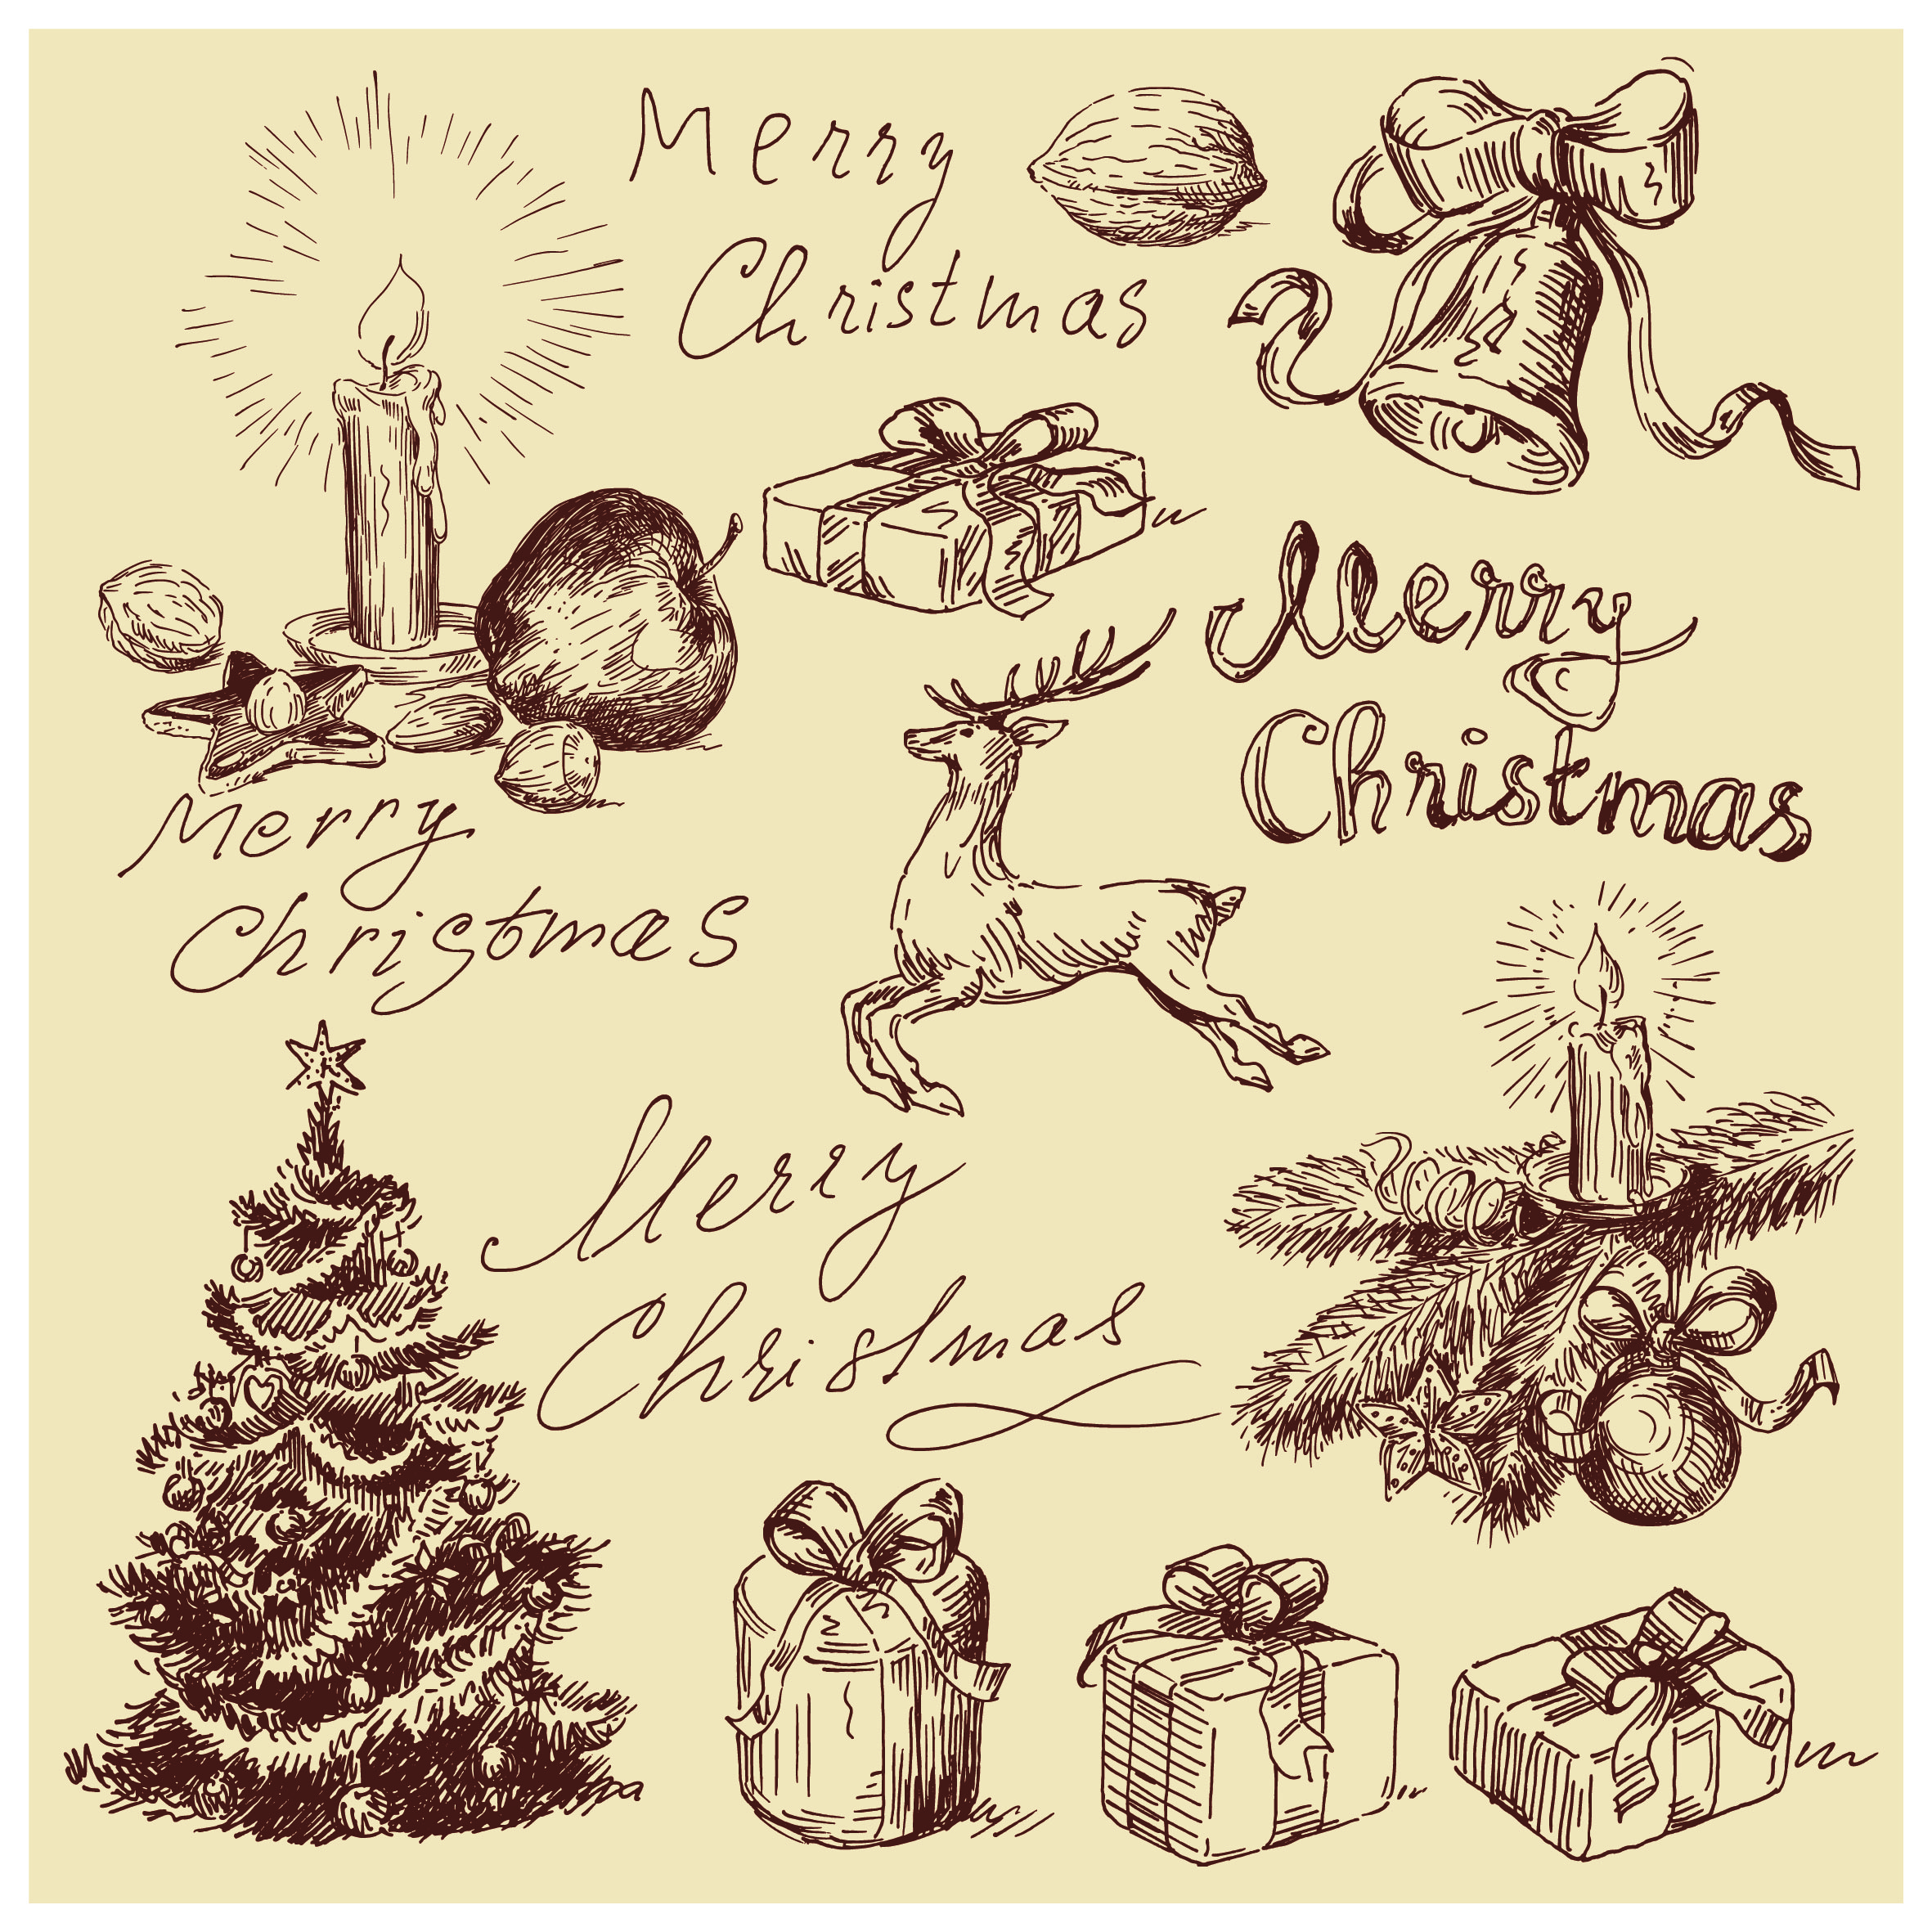 10 Free Vintage Christmas Vector Designs Images   Merry Christmas, Vintage  Ch..